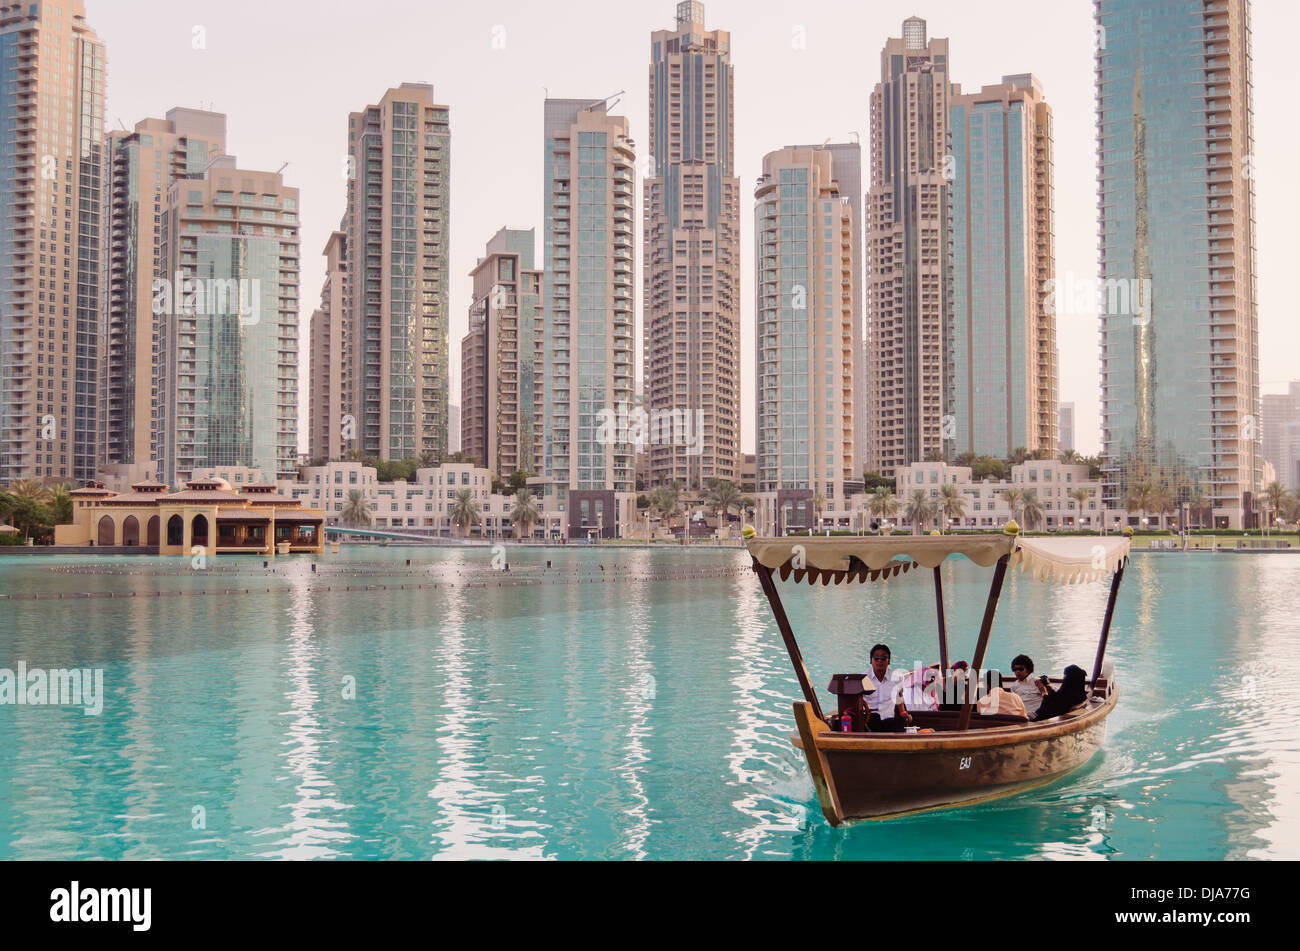 Tourists riding an abra on the waters of the man-made Burj Khalifa Lake. Dubai, United Arab Emirates. - Stock Image